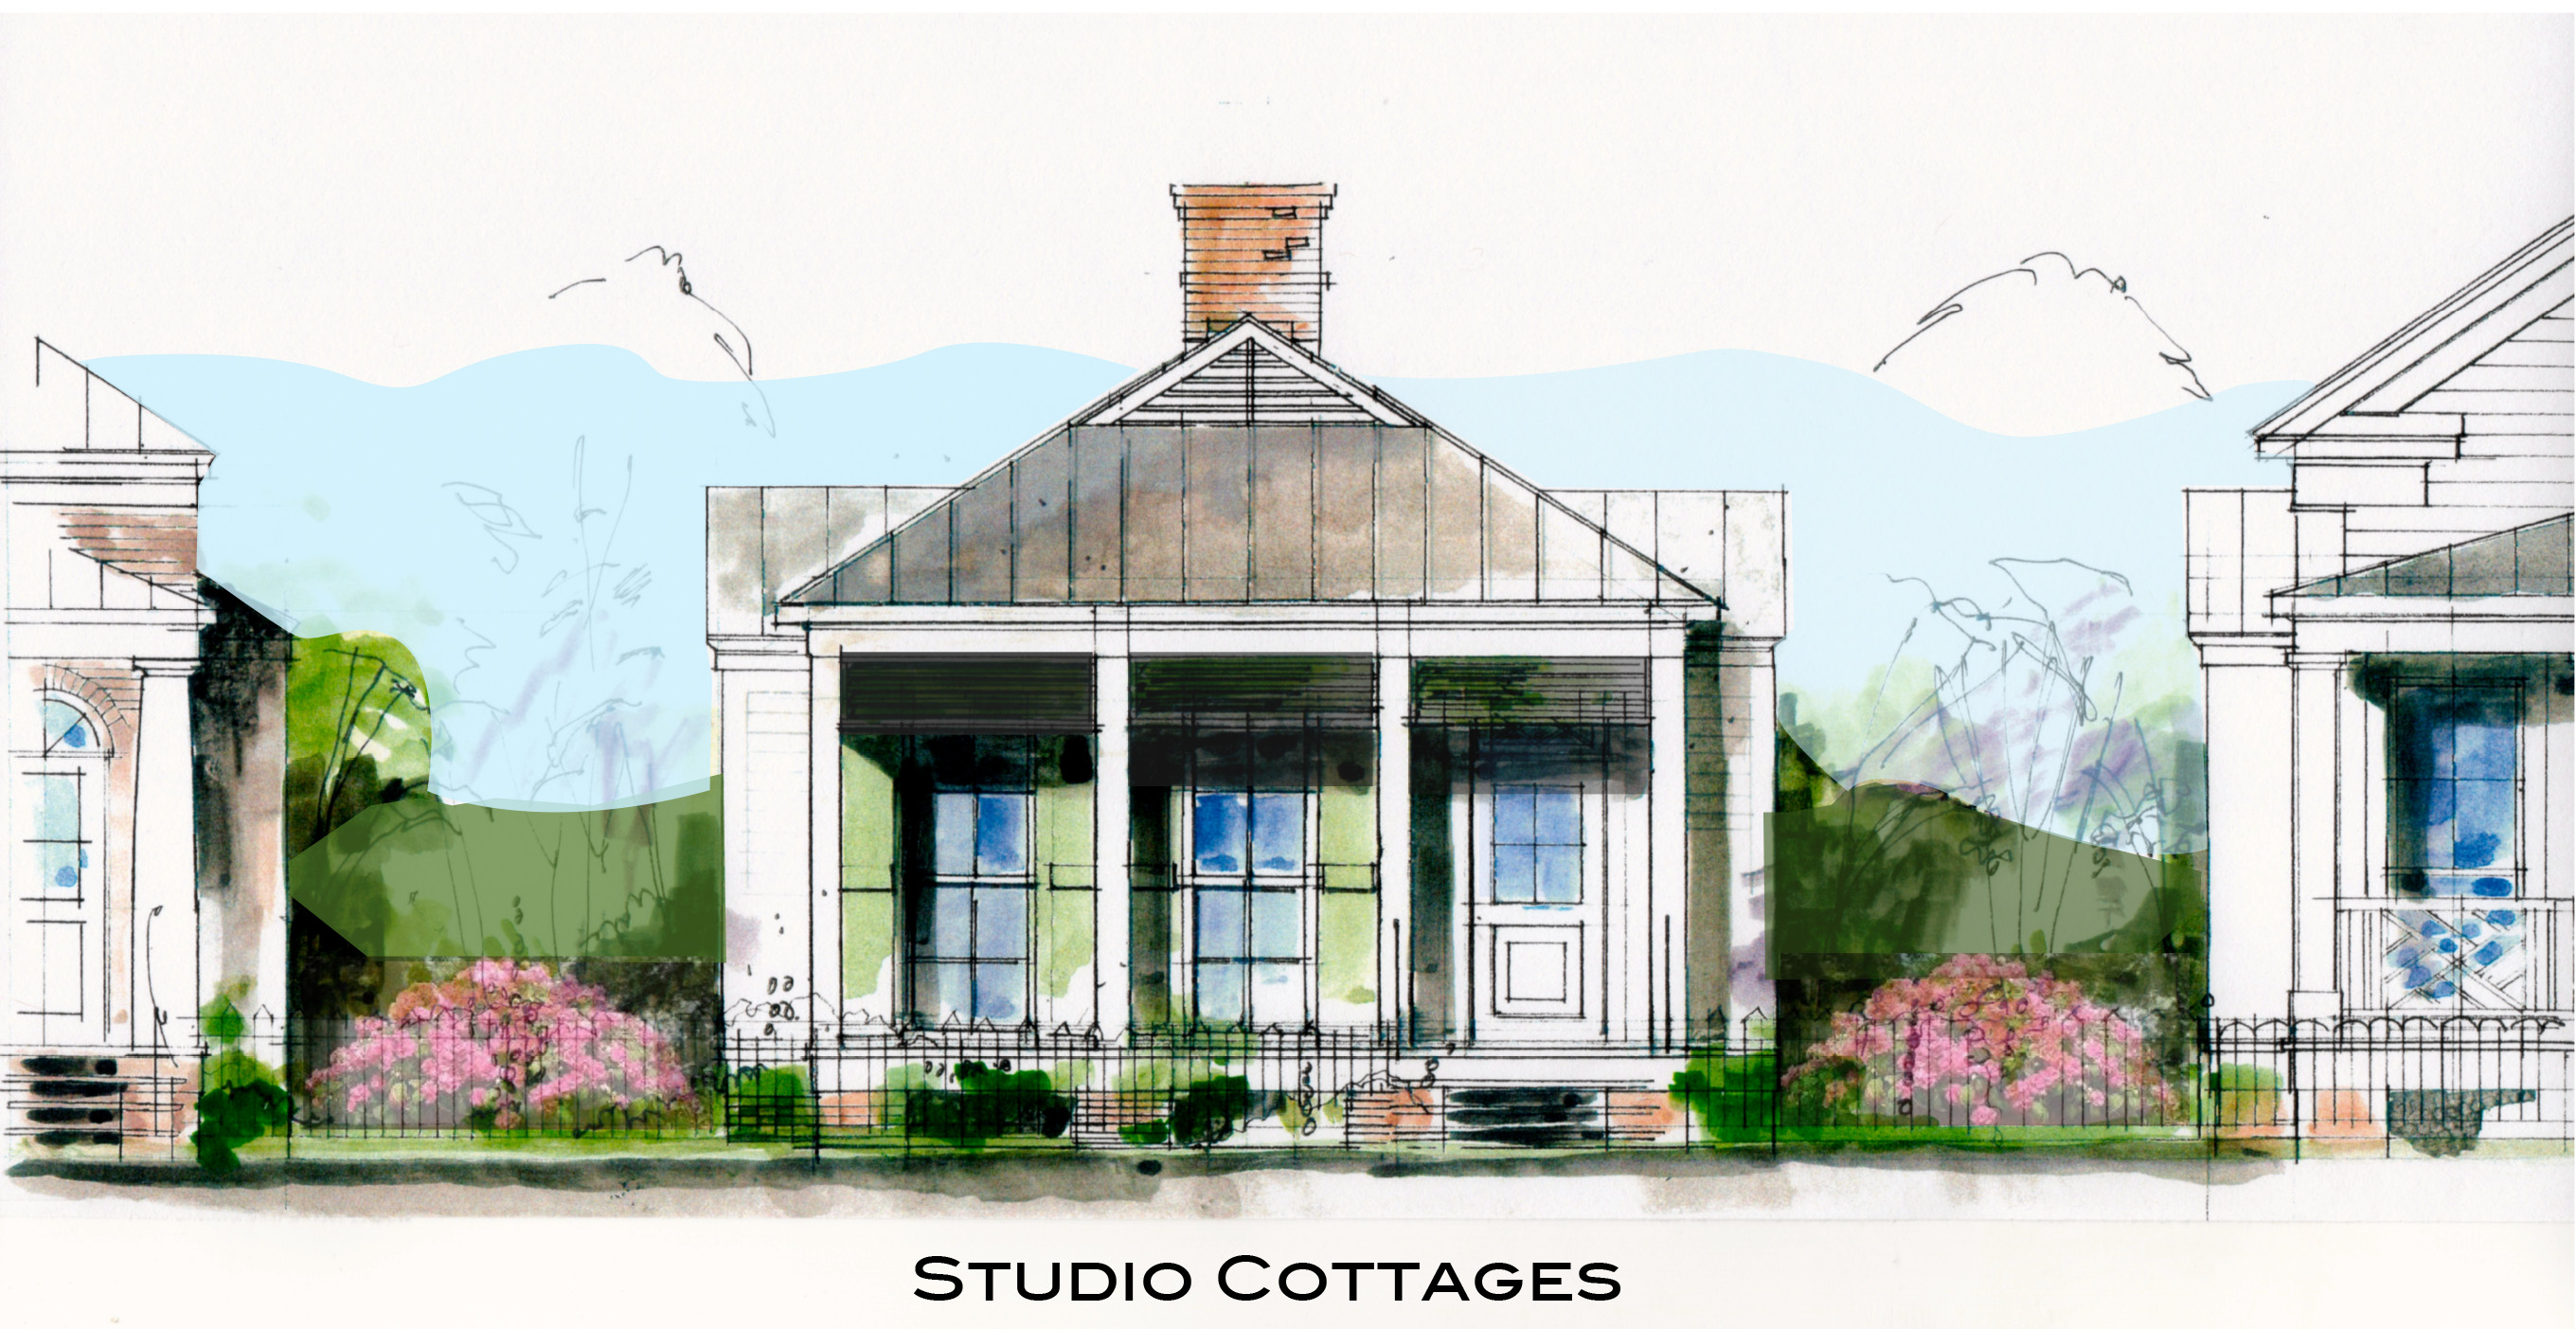 Studio cottages fcr